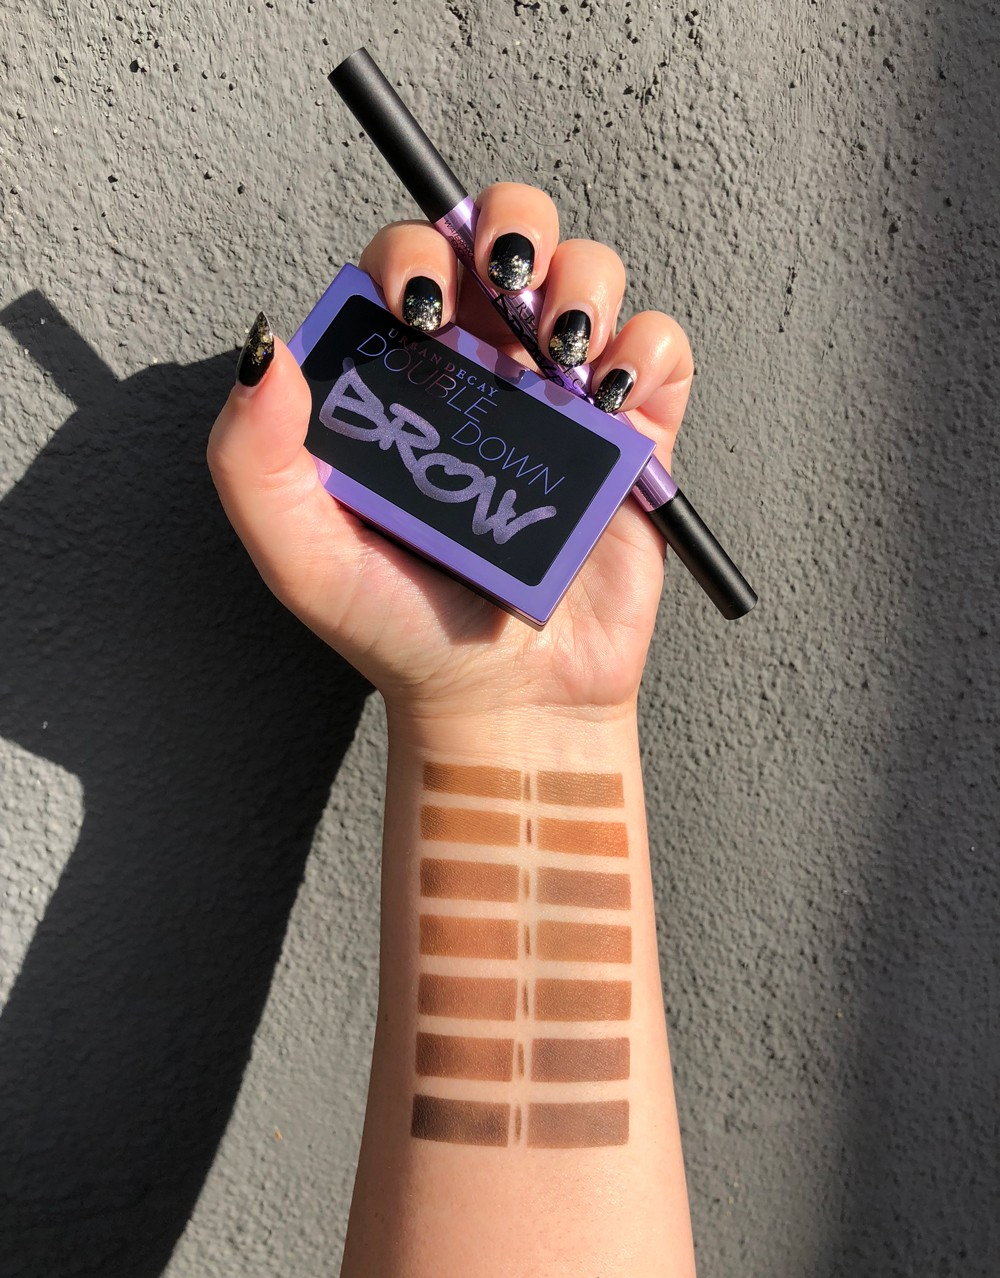 Urban Decay Street Style Brow Products Review and Swatches